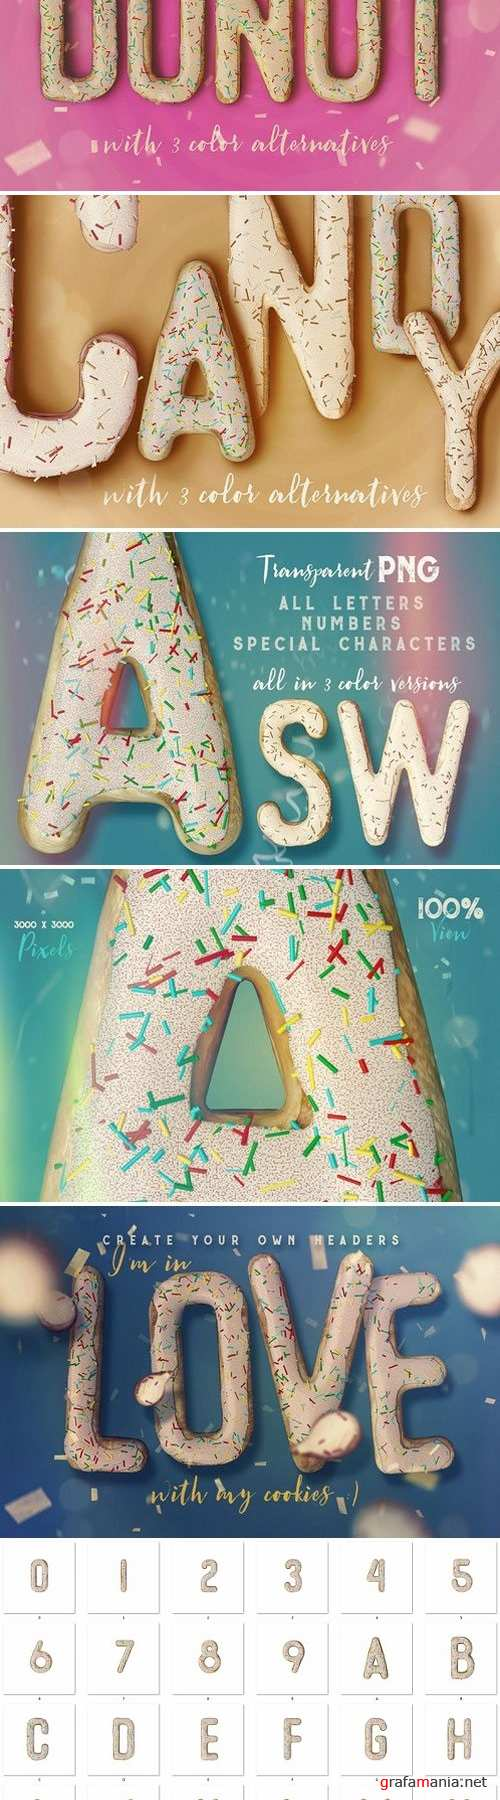 Get Your Cookie - 3D Lettering 2120383